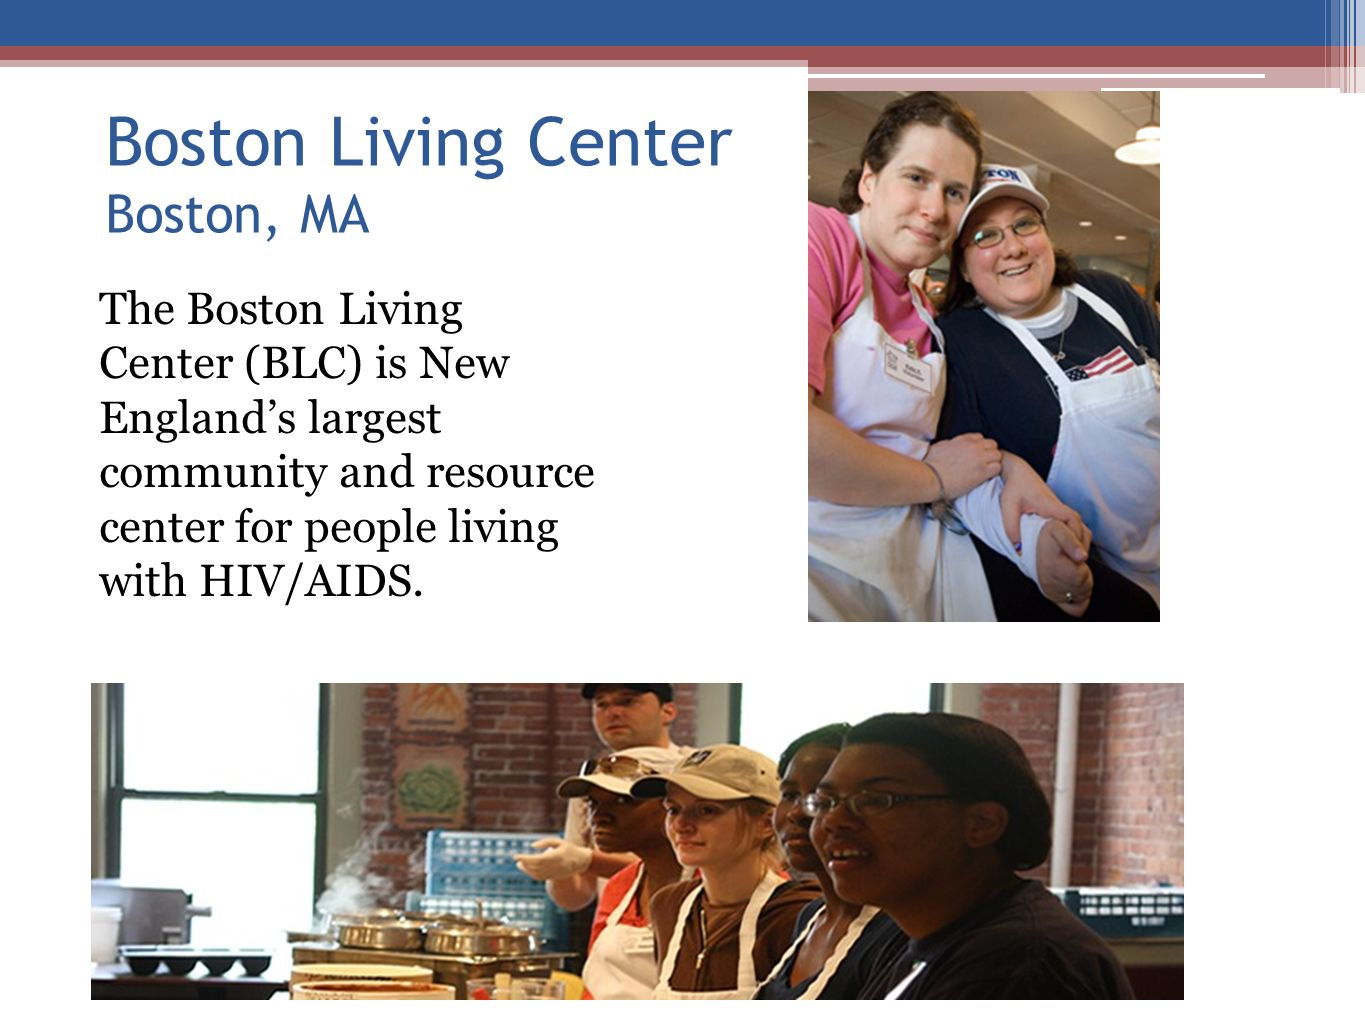 Boston Living Center Boston, MA The Boston Living Center (BLC) is New Englands largest community and resource center for people living with HIV/AIDS.